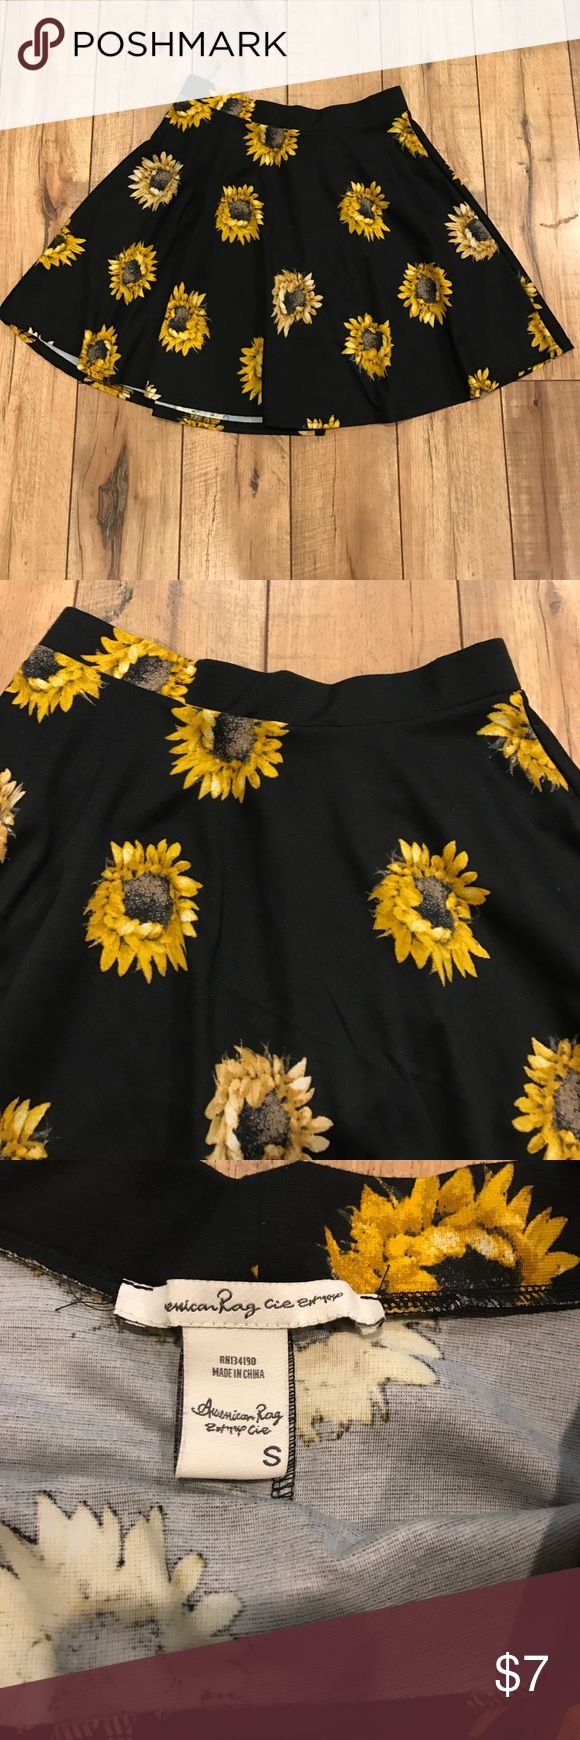 American Rag sunflower skirt American Rag skirt. Worn a few times. Size Small American Rag Skirts